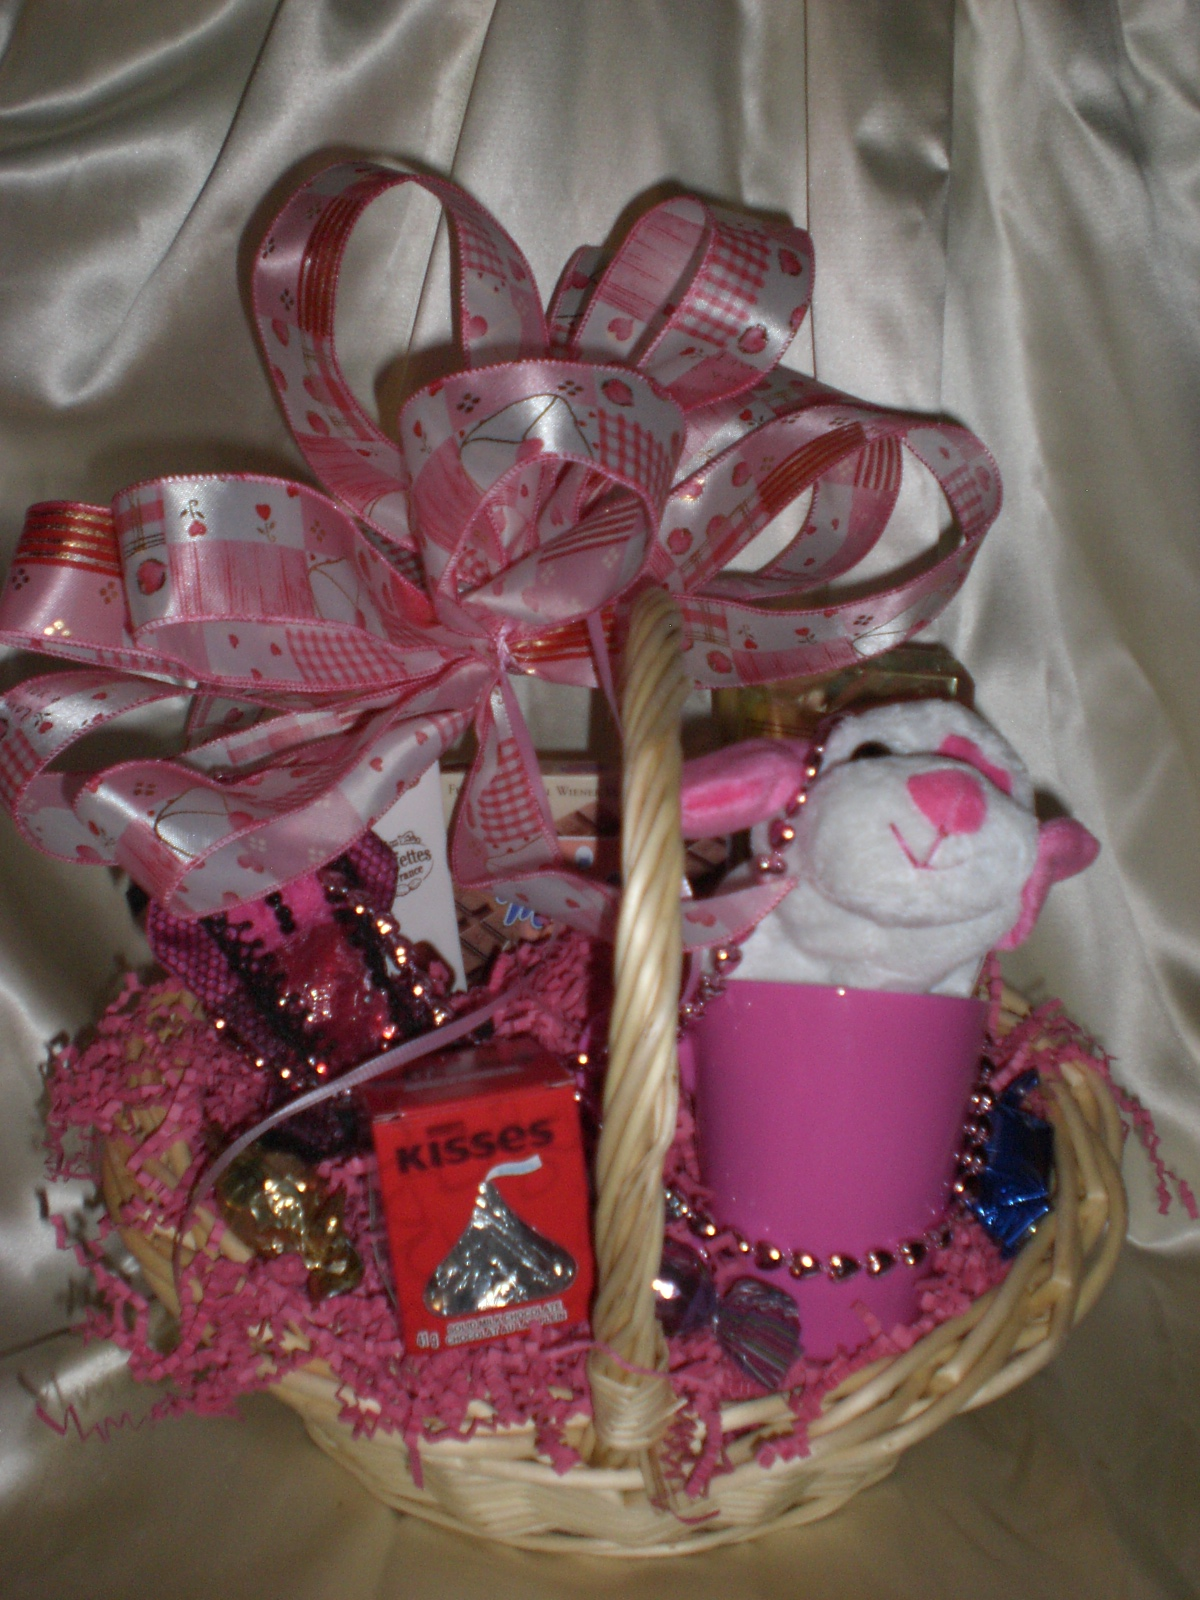 Sweet Whimsy - unwrapped version